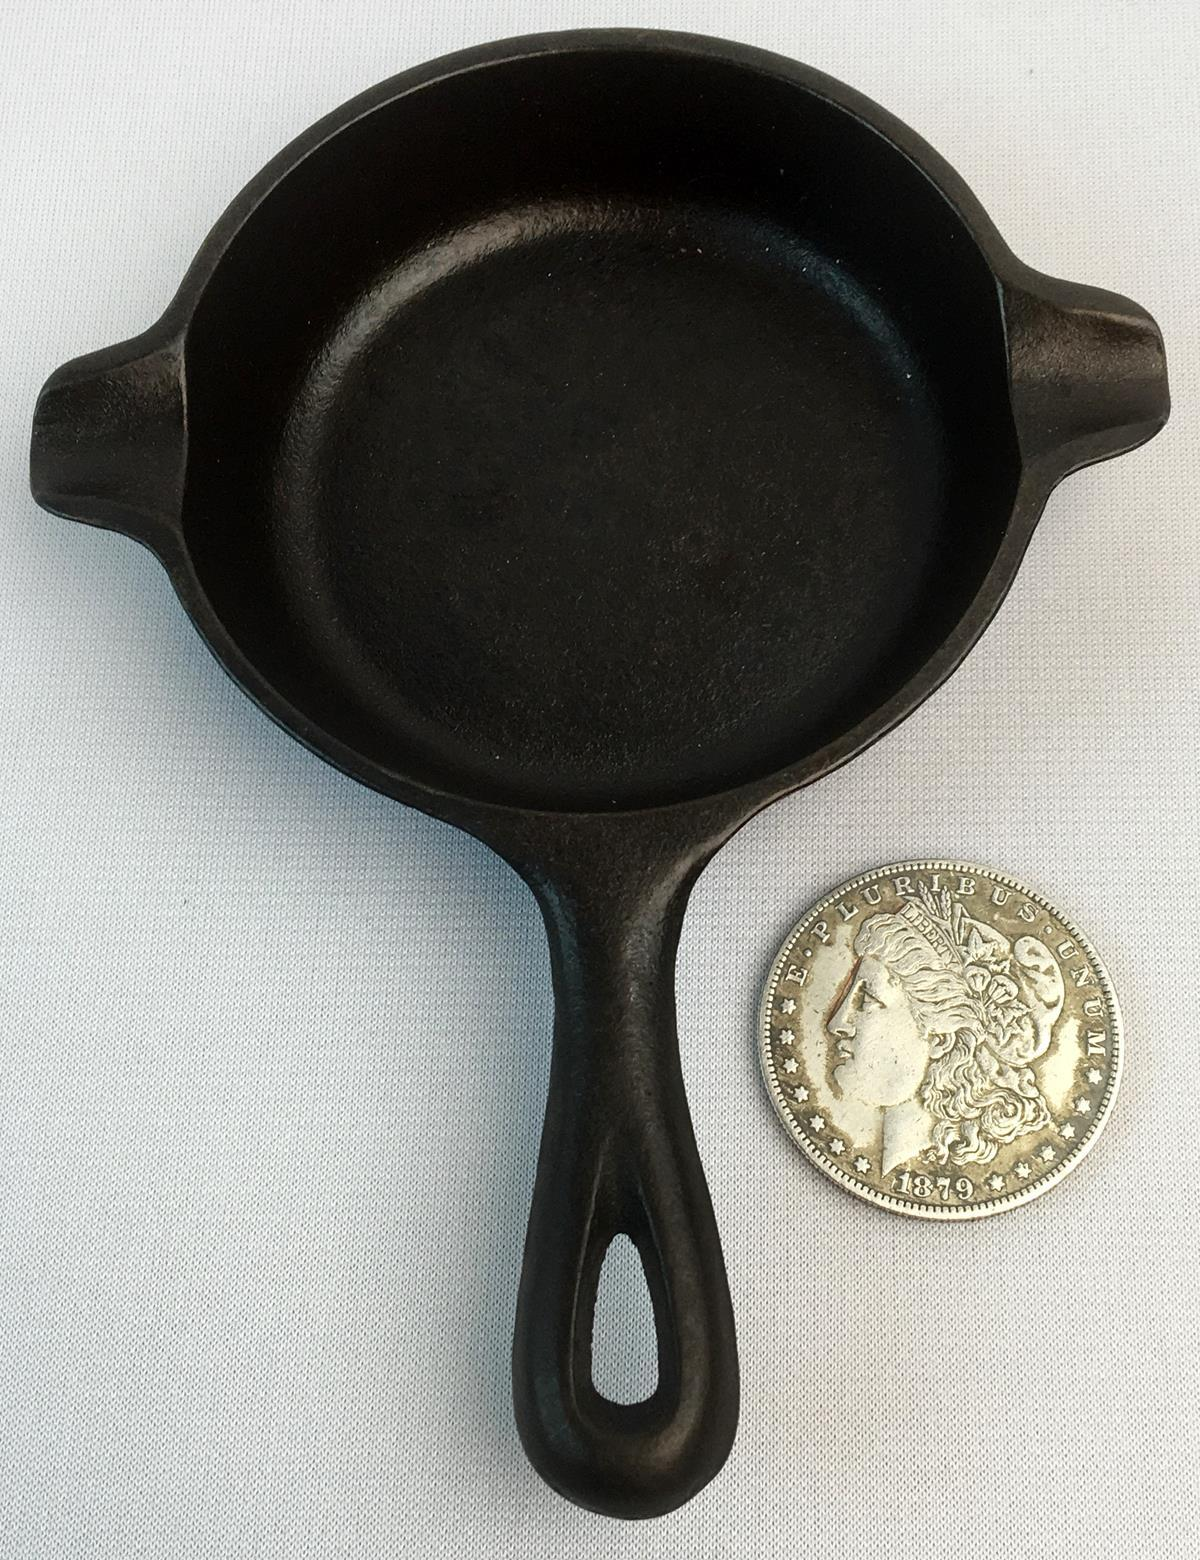 Vintage Wagner Ware 1050 A Mini Cast Iron Skillet Ashtray or Spoon Holder